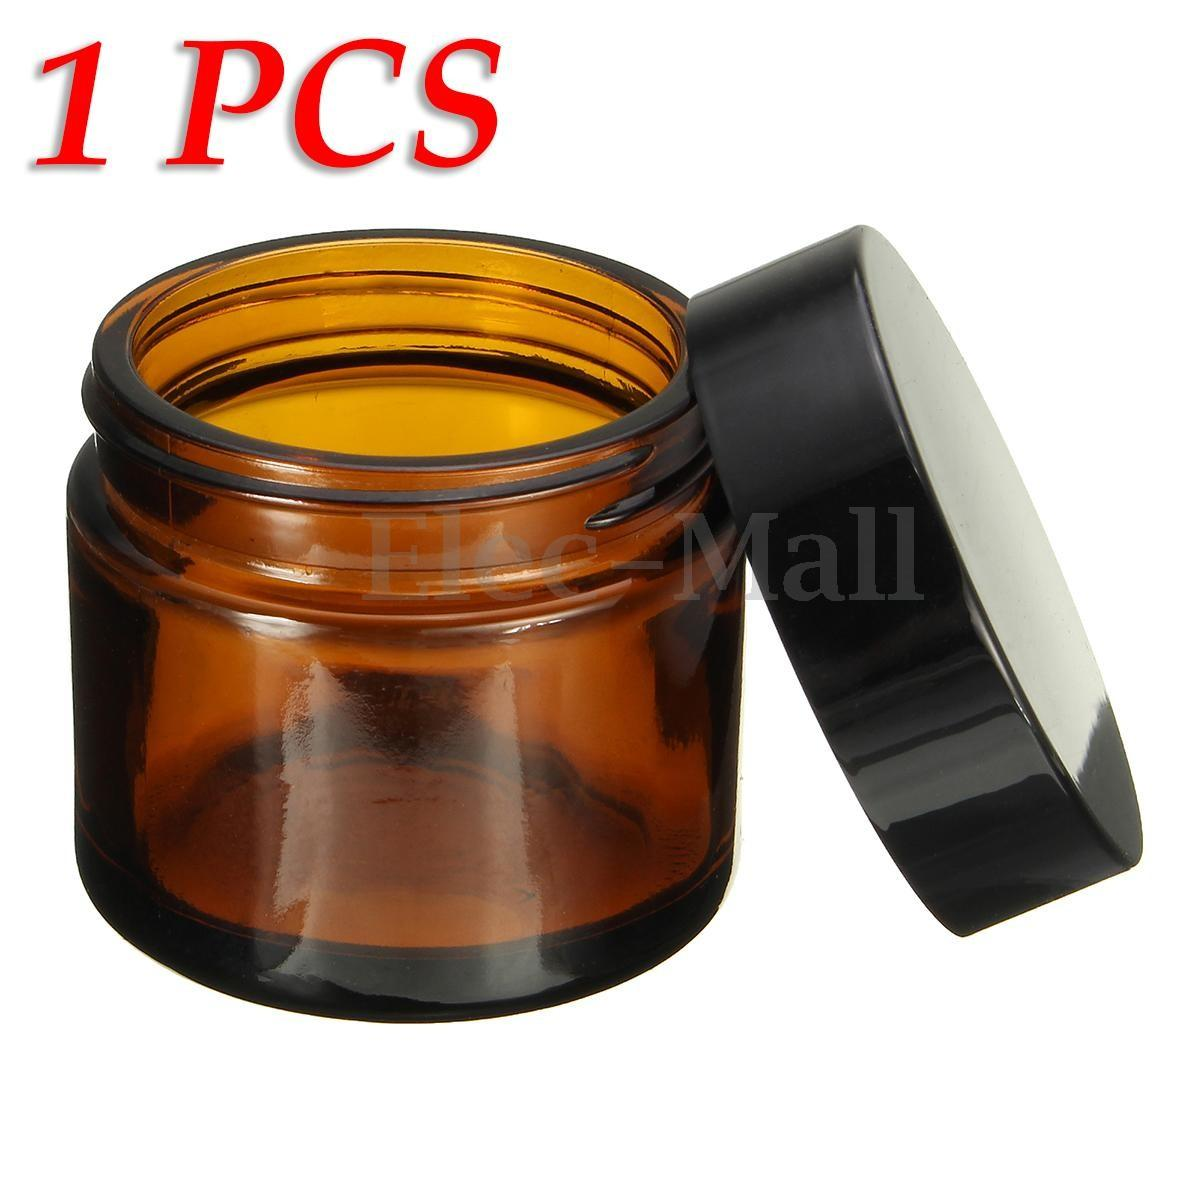 60ml Amber Glass Jar Bottles Containers Cream Diy